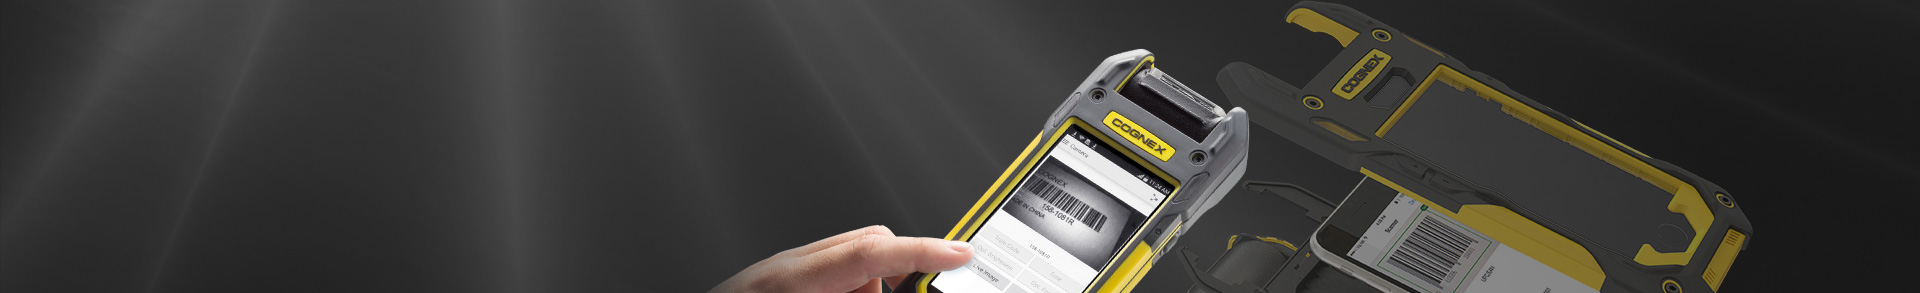 mx1000 mobile barcode reading terminal banner hand using phone